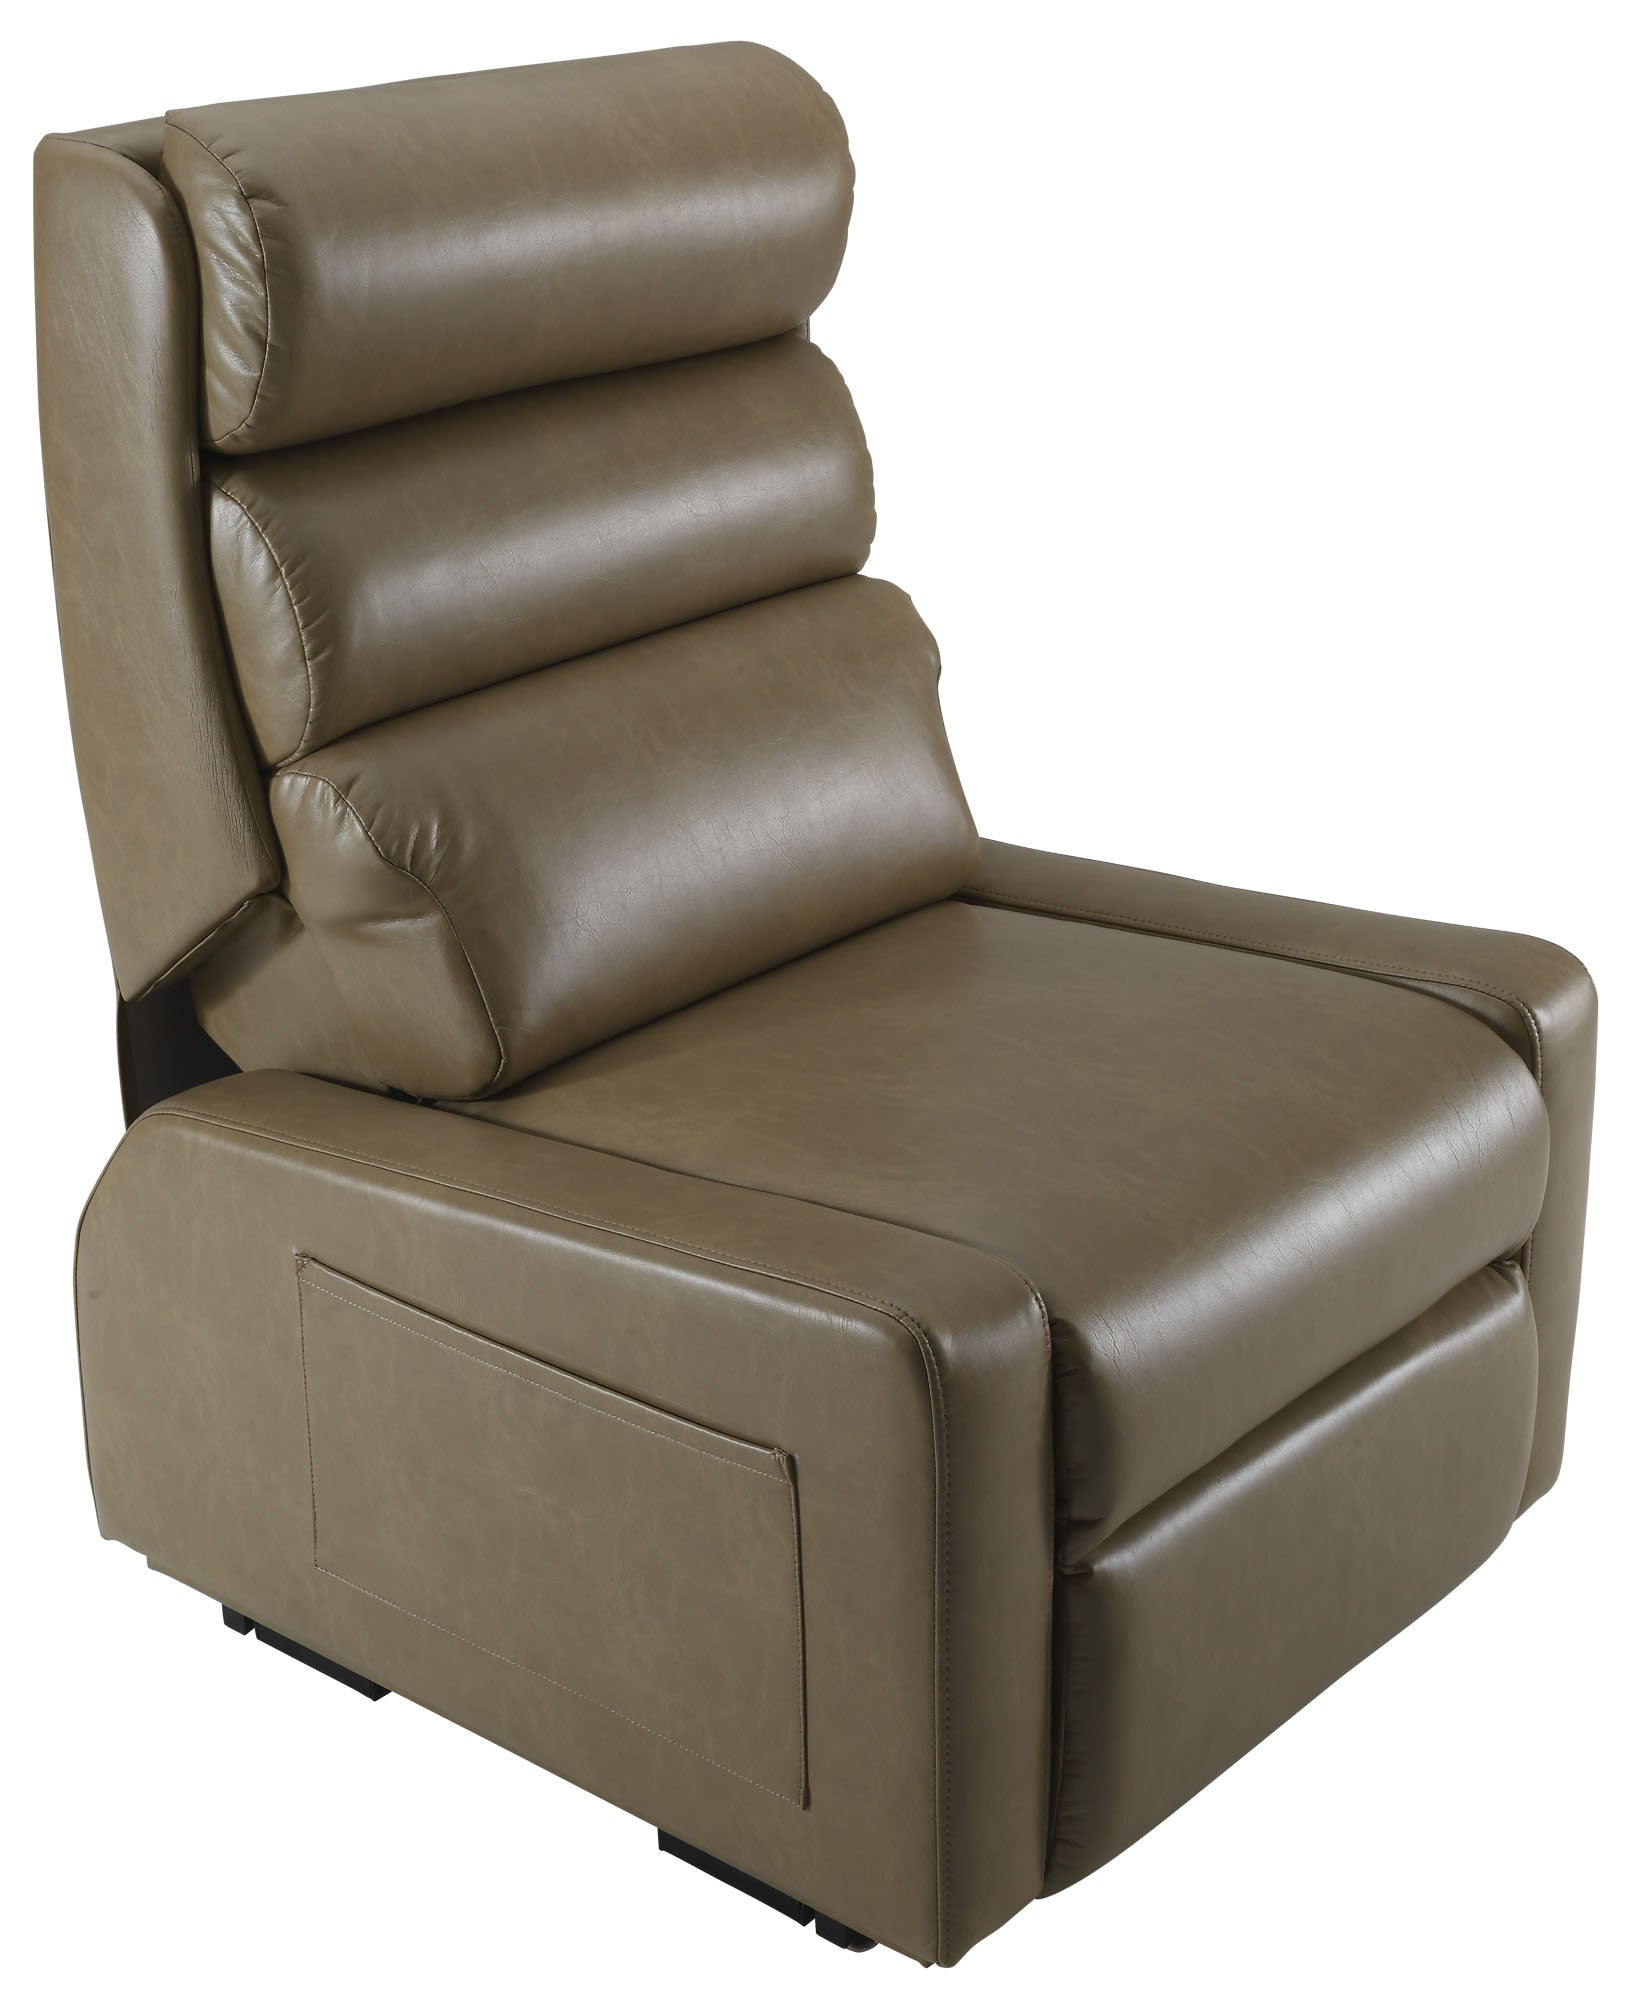 mc520 lift recliner chairs stand assist recliner lift and